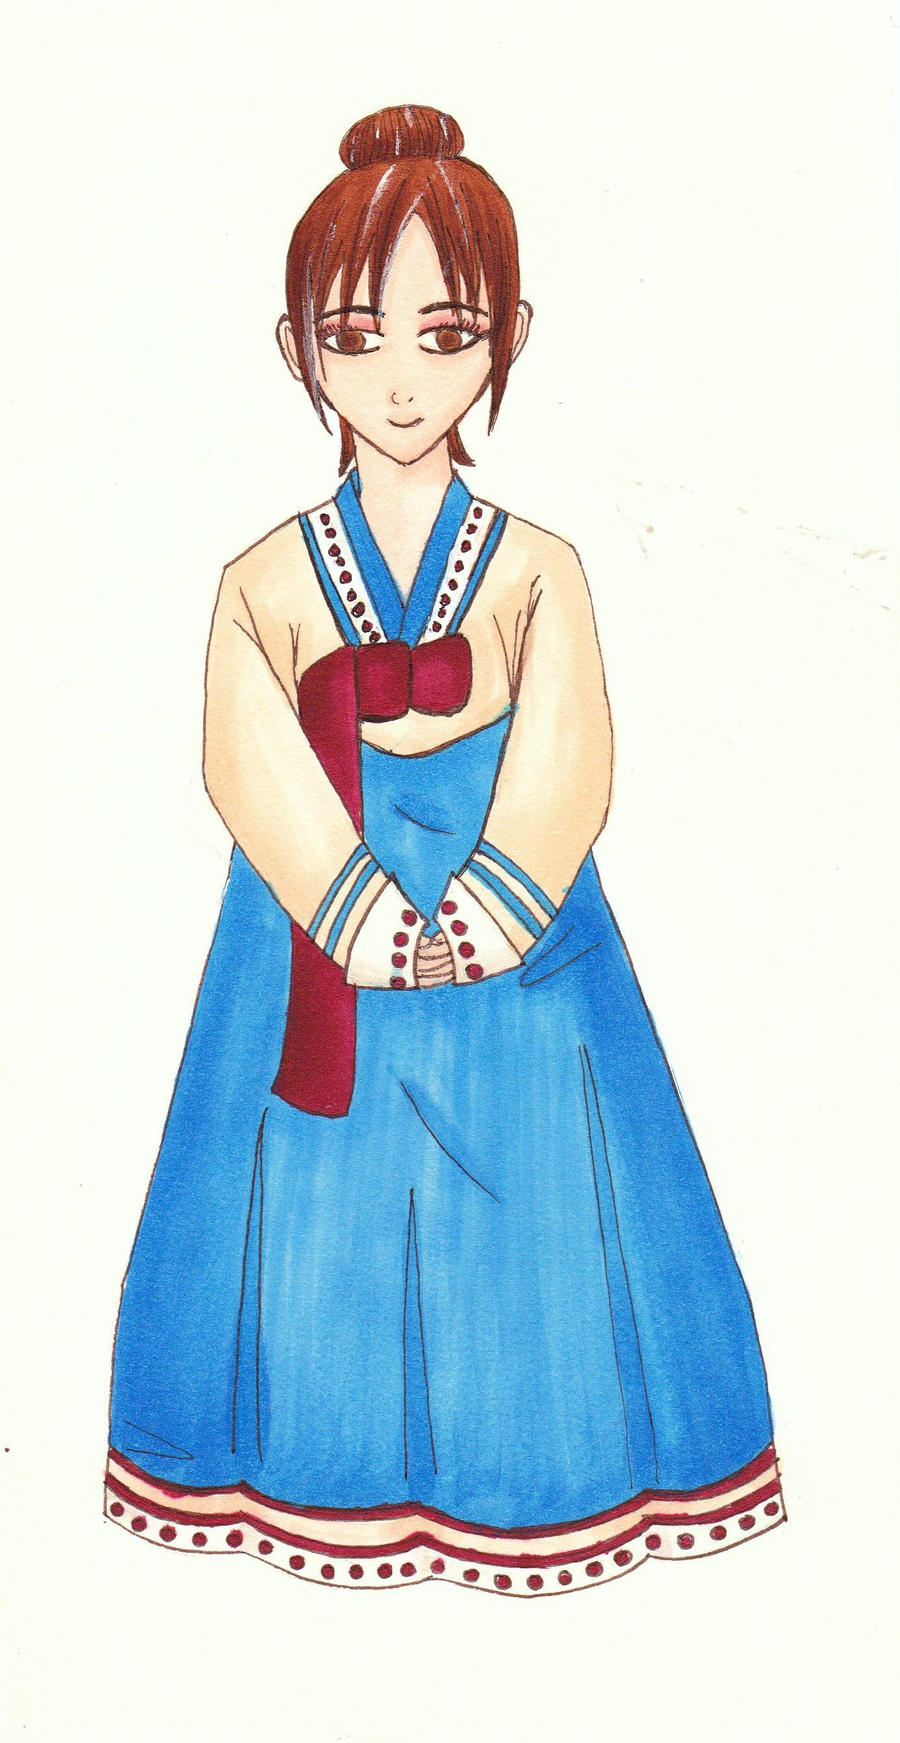 the gallery for gt korean traditional dress drawing for men